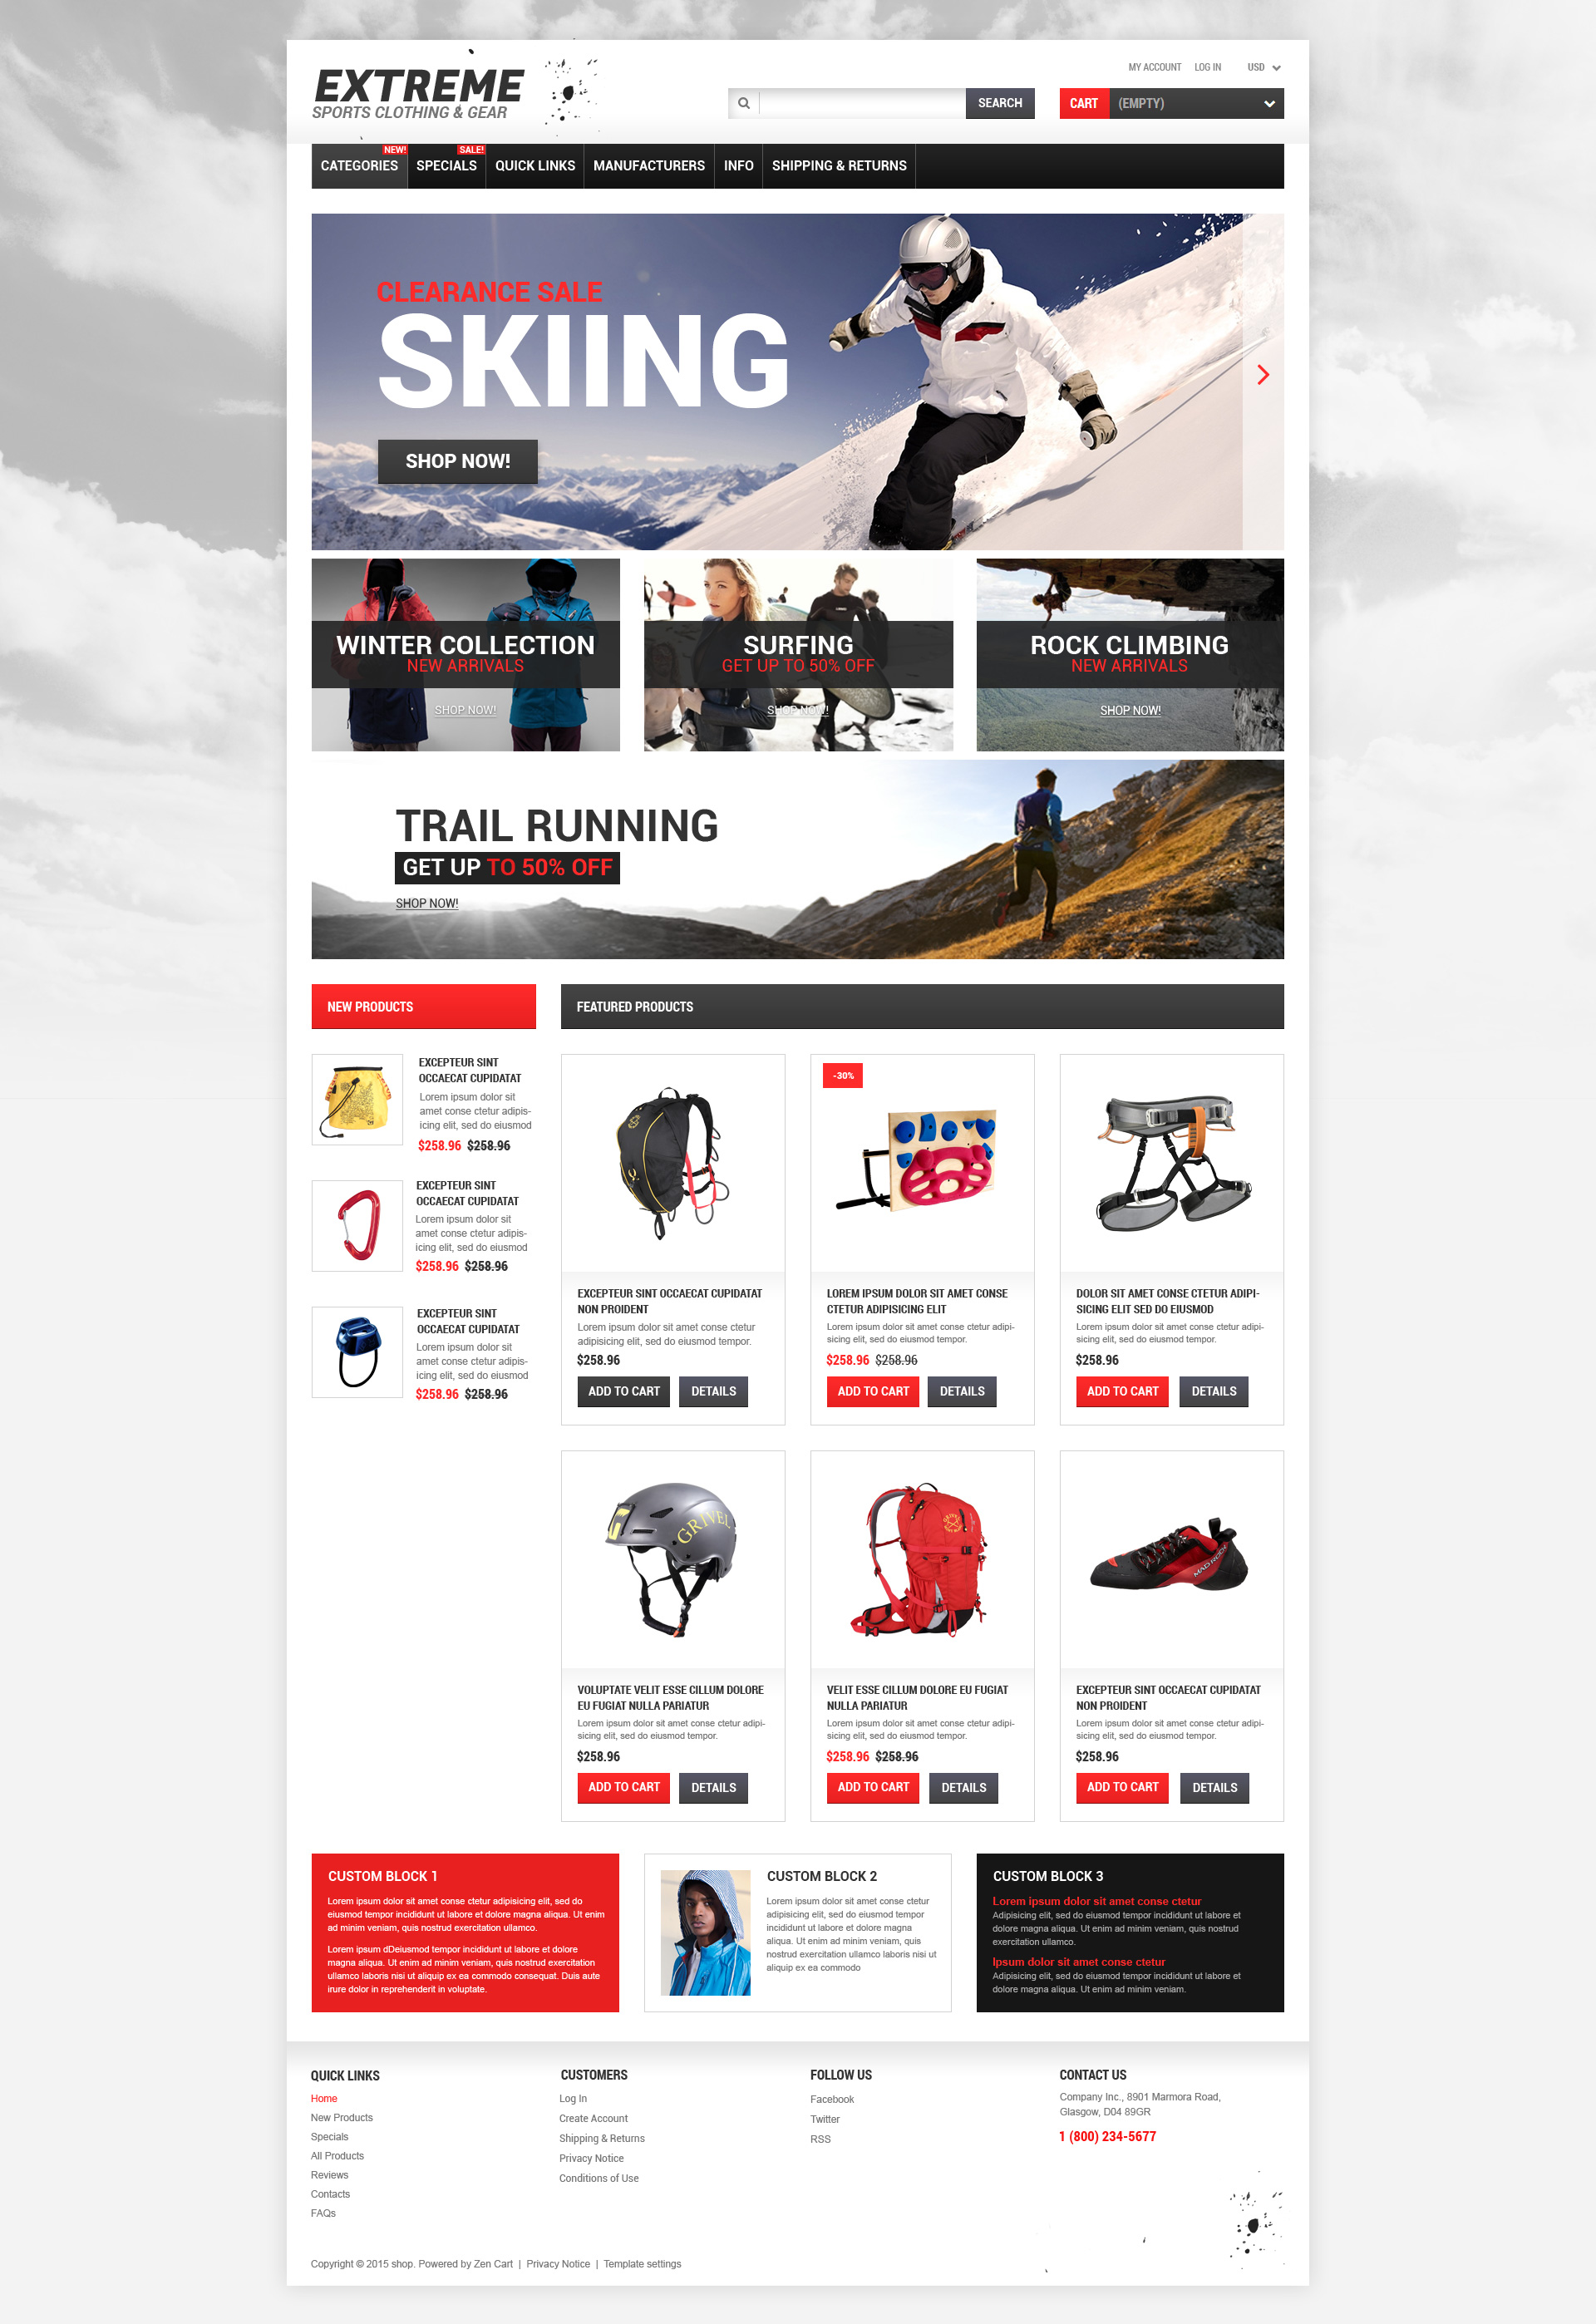 The Extreme Sport Online Shop Zen Cart Design 53474, one of the best ZenCart templates of its kind (sport, most popular), also known as extreme sport online shop ZenCart template, fashion ZenCart template, pant ZenCart template, sweatshirt ZenCart template, belt ZenCart template, accessory ZenCart template, denim ZenCart template, outwear ZenCart template, pajama ZenCart template, robe ZenCart template, sweater ZenCart template, suit ZenCart template, short ZenCart template, underwear ZenCart template, kids ZenCart template, children ZenCart template, socks ZenCart template, wallet ZenCart template, t-shirt ZenCart template, jeans ZenCart template, jacket ZenCart template, pullover ZenCart template, swimsuit ZenCart template, thong ZenCart template, coverall ZenCart template, bag ZenCart template, shoes ZenCart template, dress ZenCart template, tie ZenCart template, brassier ZenCart template, prices ZenCart template, eye ZenCart template, wear ZenCart template, perfumes ZenCart template, footwear and related with extreme sport online shop, fashion, pant, sweatshirt, belt, accessory, denim, outwear, pajama, robe, sweater, suit, short, underwear, kids, children, socks, wallet, t-shirt, jeans, jacket, pullover, swimsuit, thong, coverall, bag, shoes, dress, tie, brassier, prices, eye, wear, perfumes, footwear, etc.